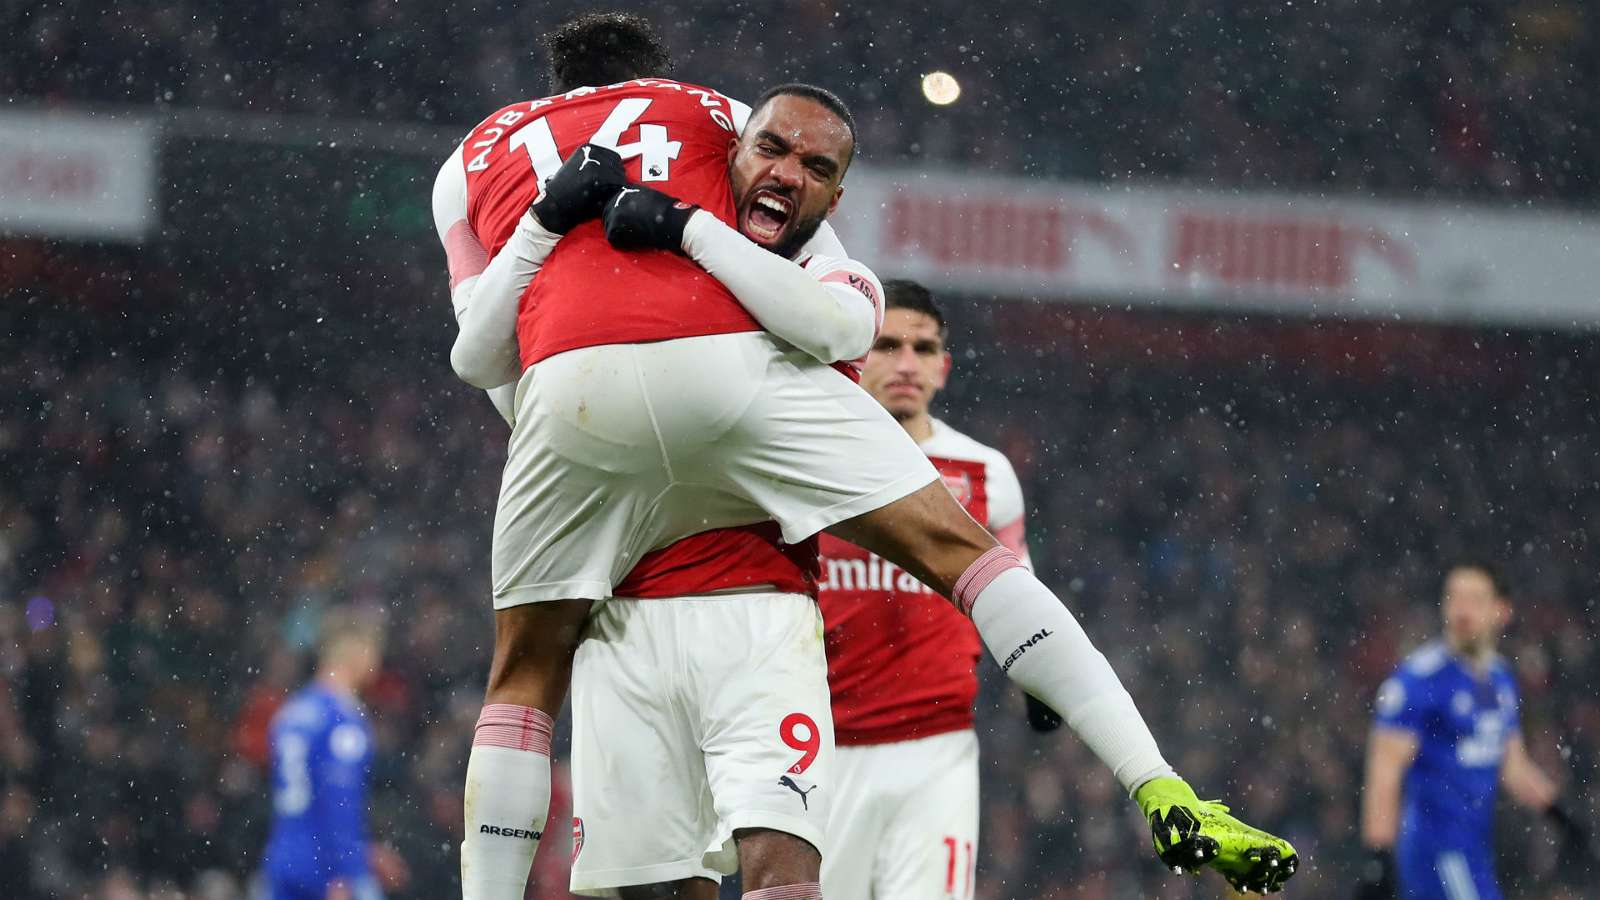 Photo of Arsenal vs Cardiff City 2-1: Premier League Match Report & Highlights